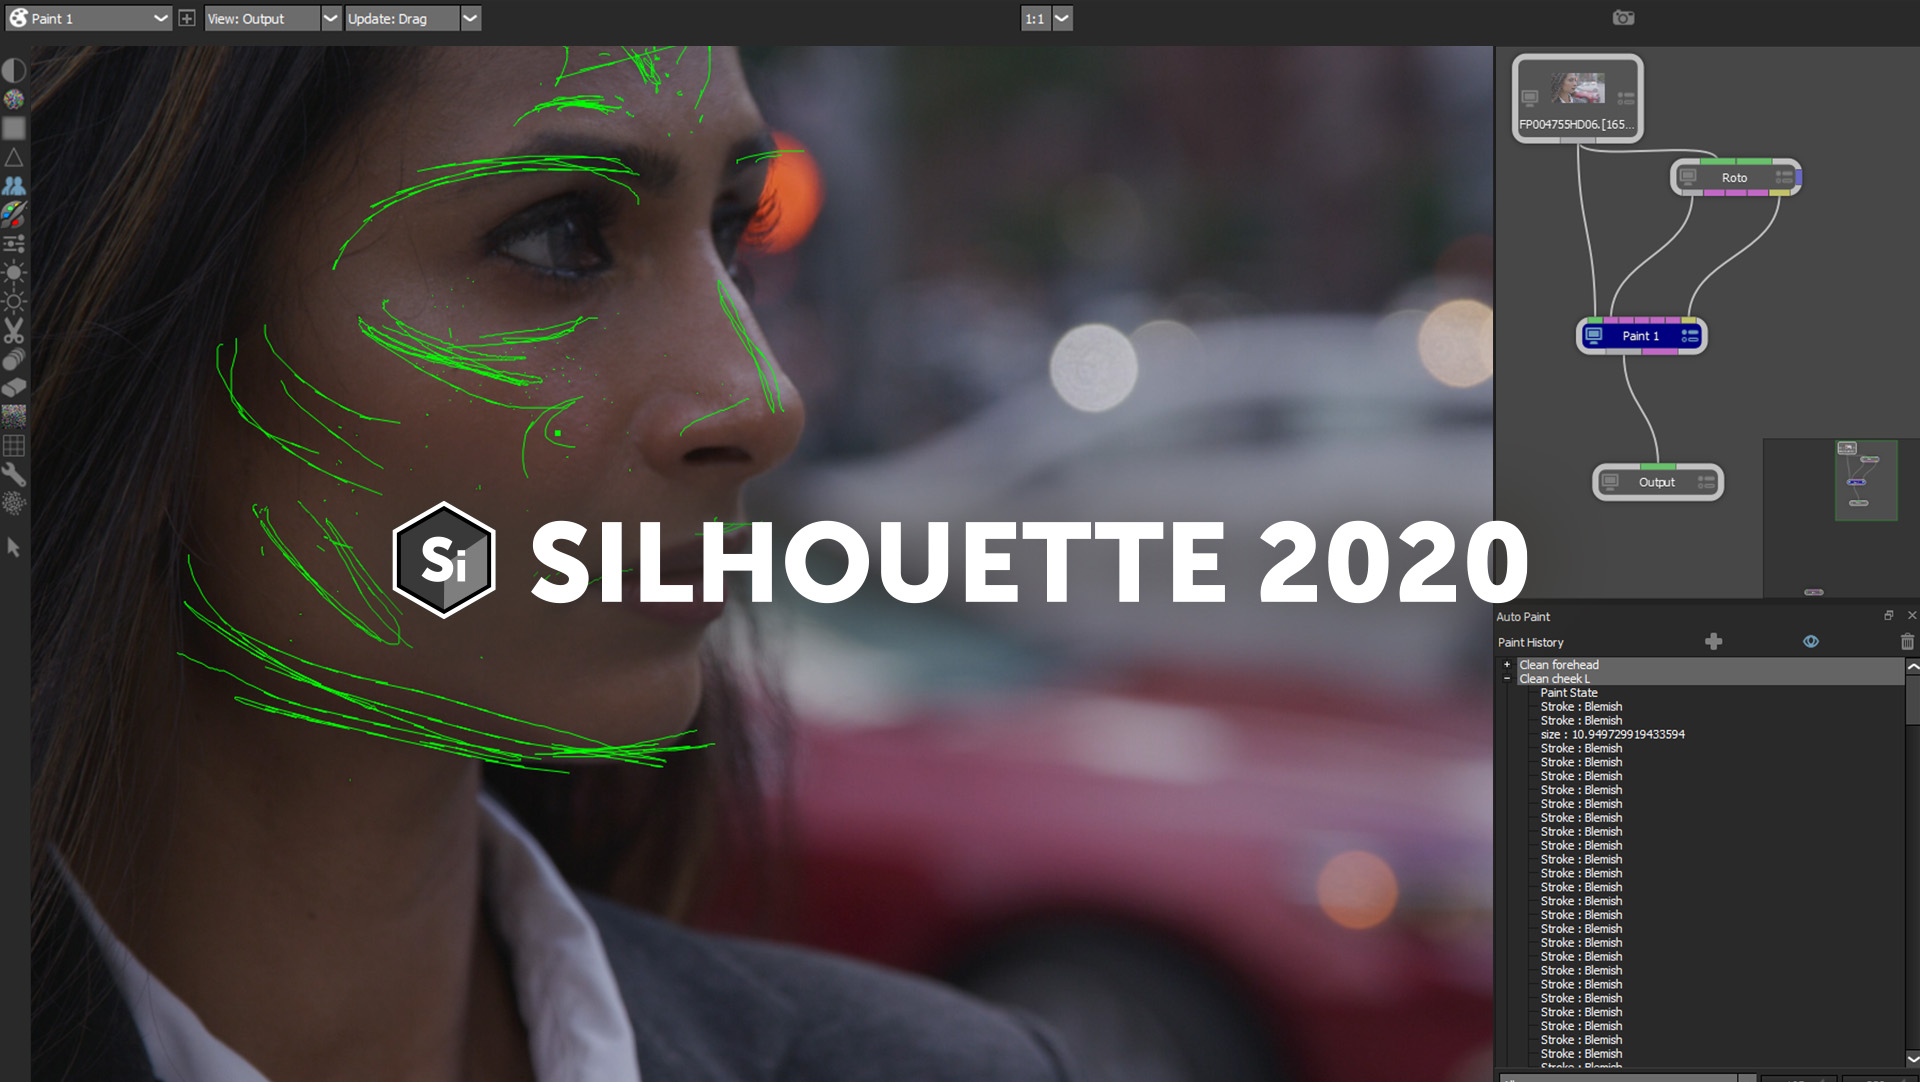 Silhouette 2020 interface with new paint brushes